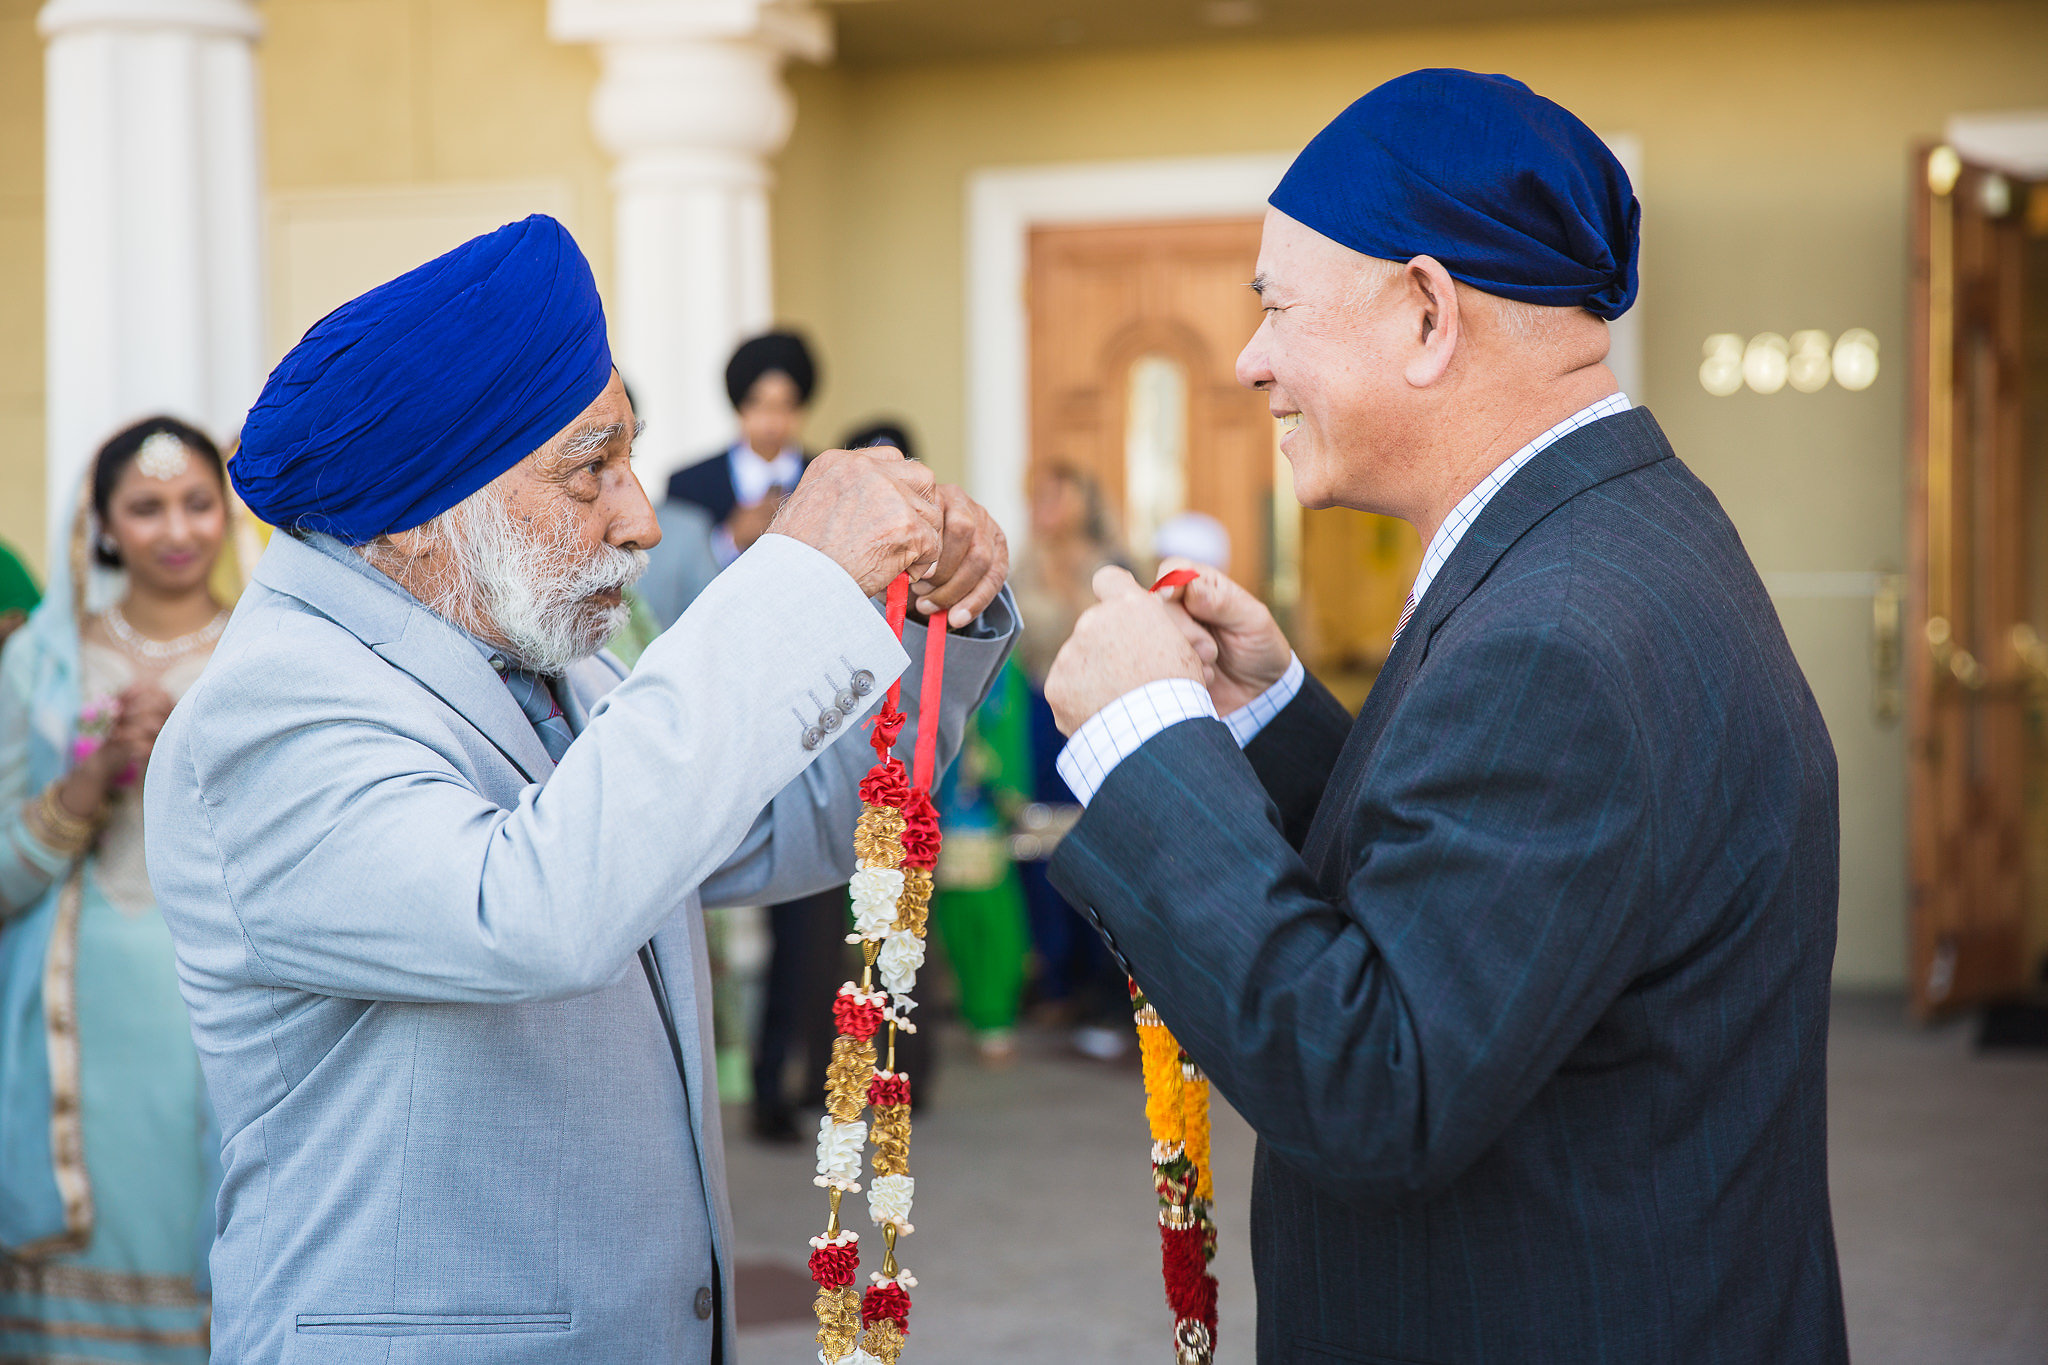 Following the Barat was the Milni. Family members from both sides welcomed and offered each other floral garlands.